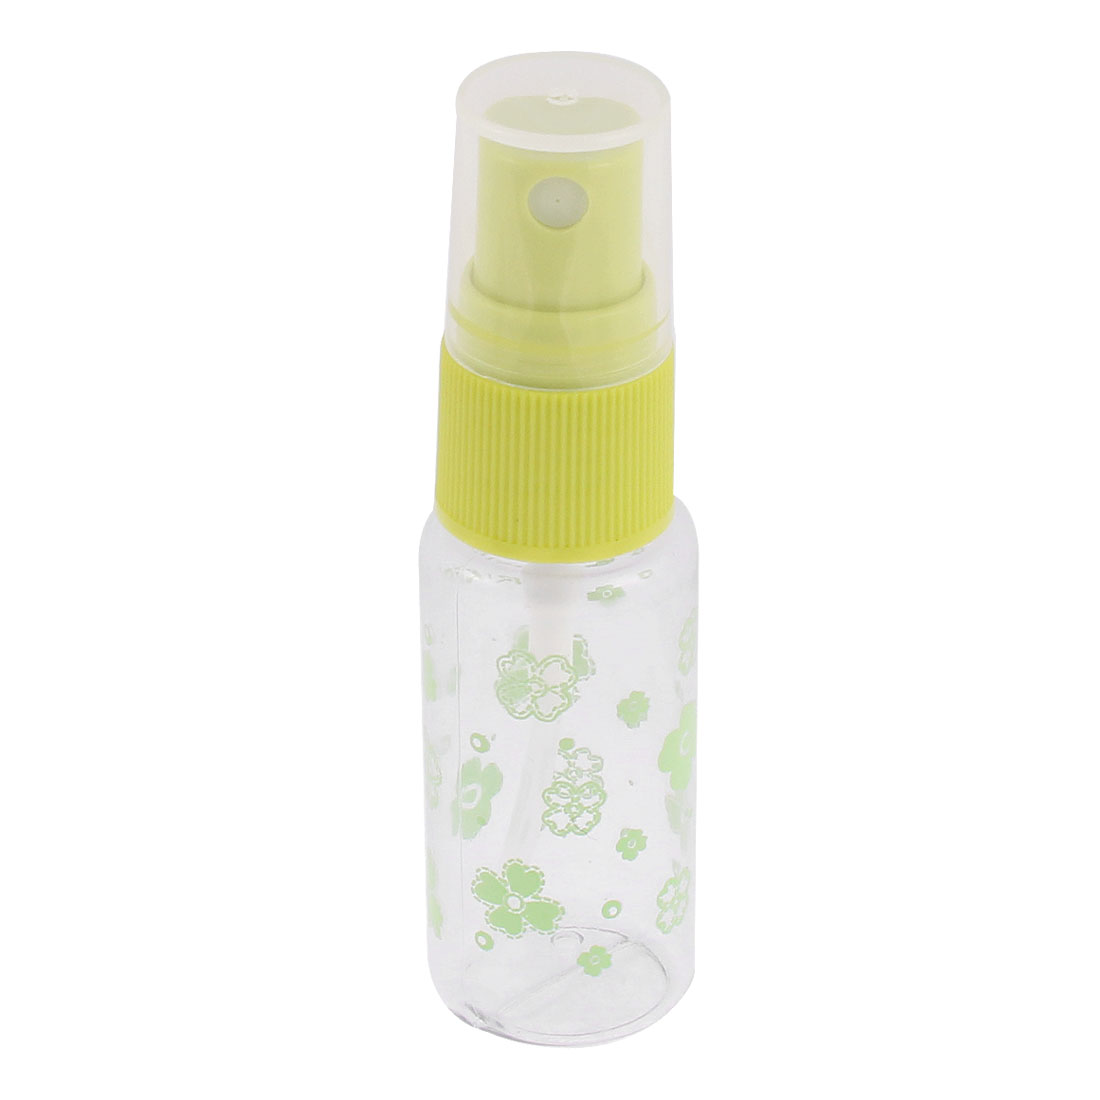 Cosmetic Makeup Perfume Liquid Container Spray Bottles 15ml Lime Clear